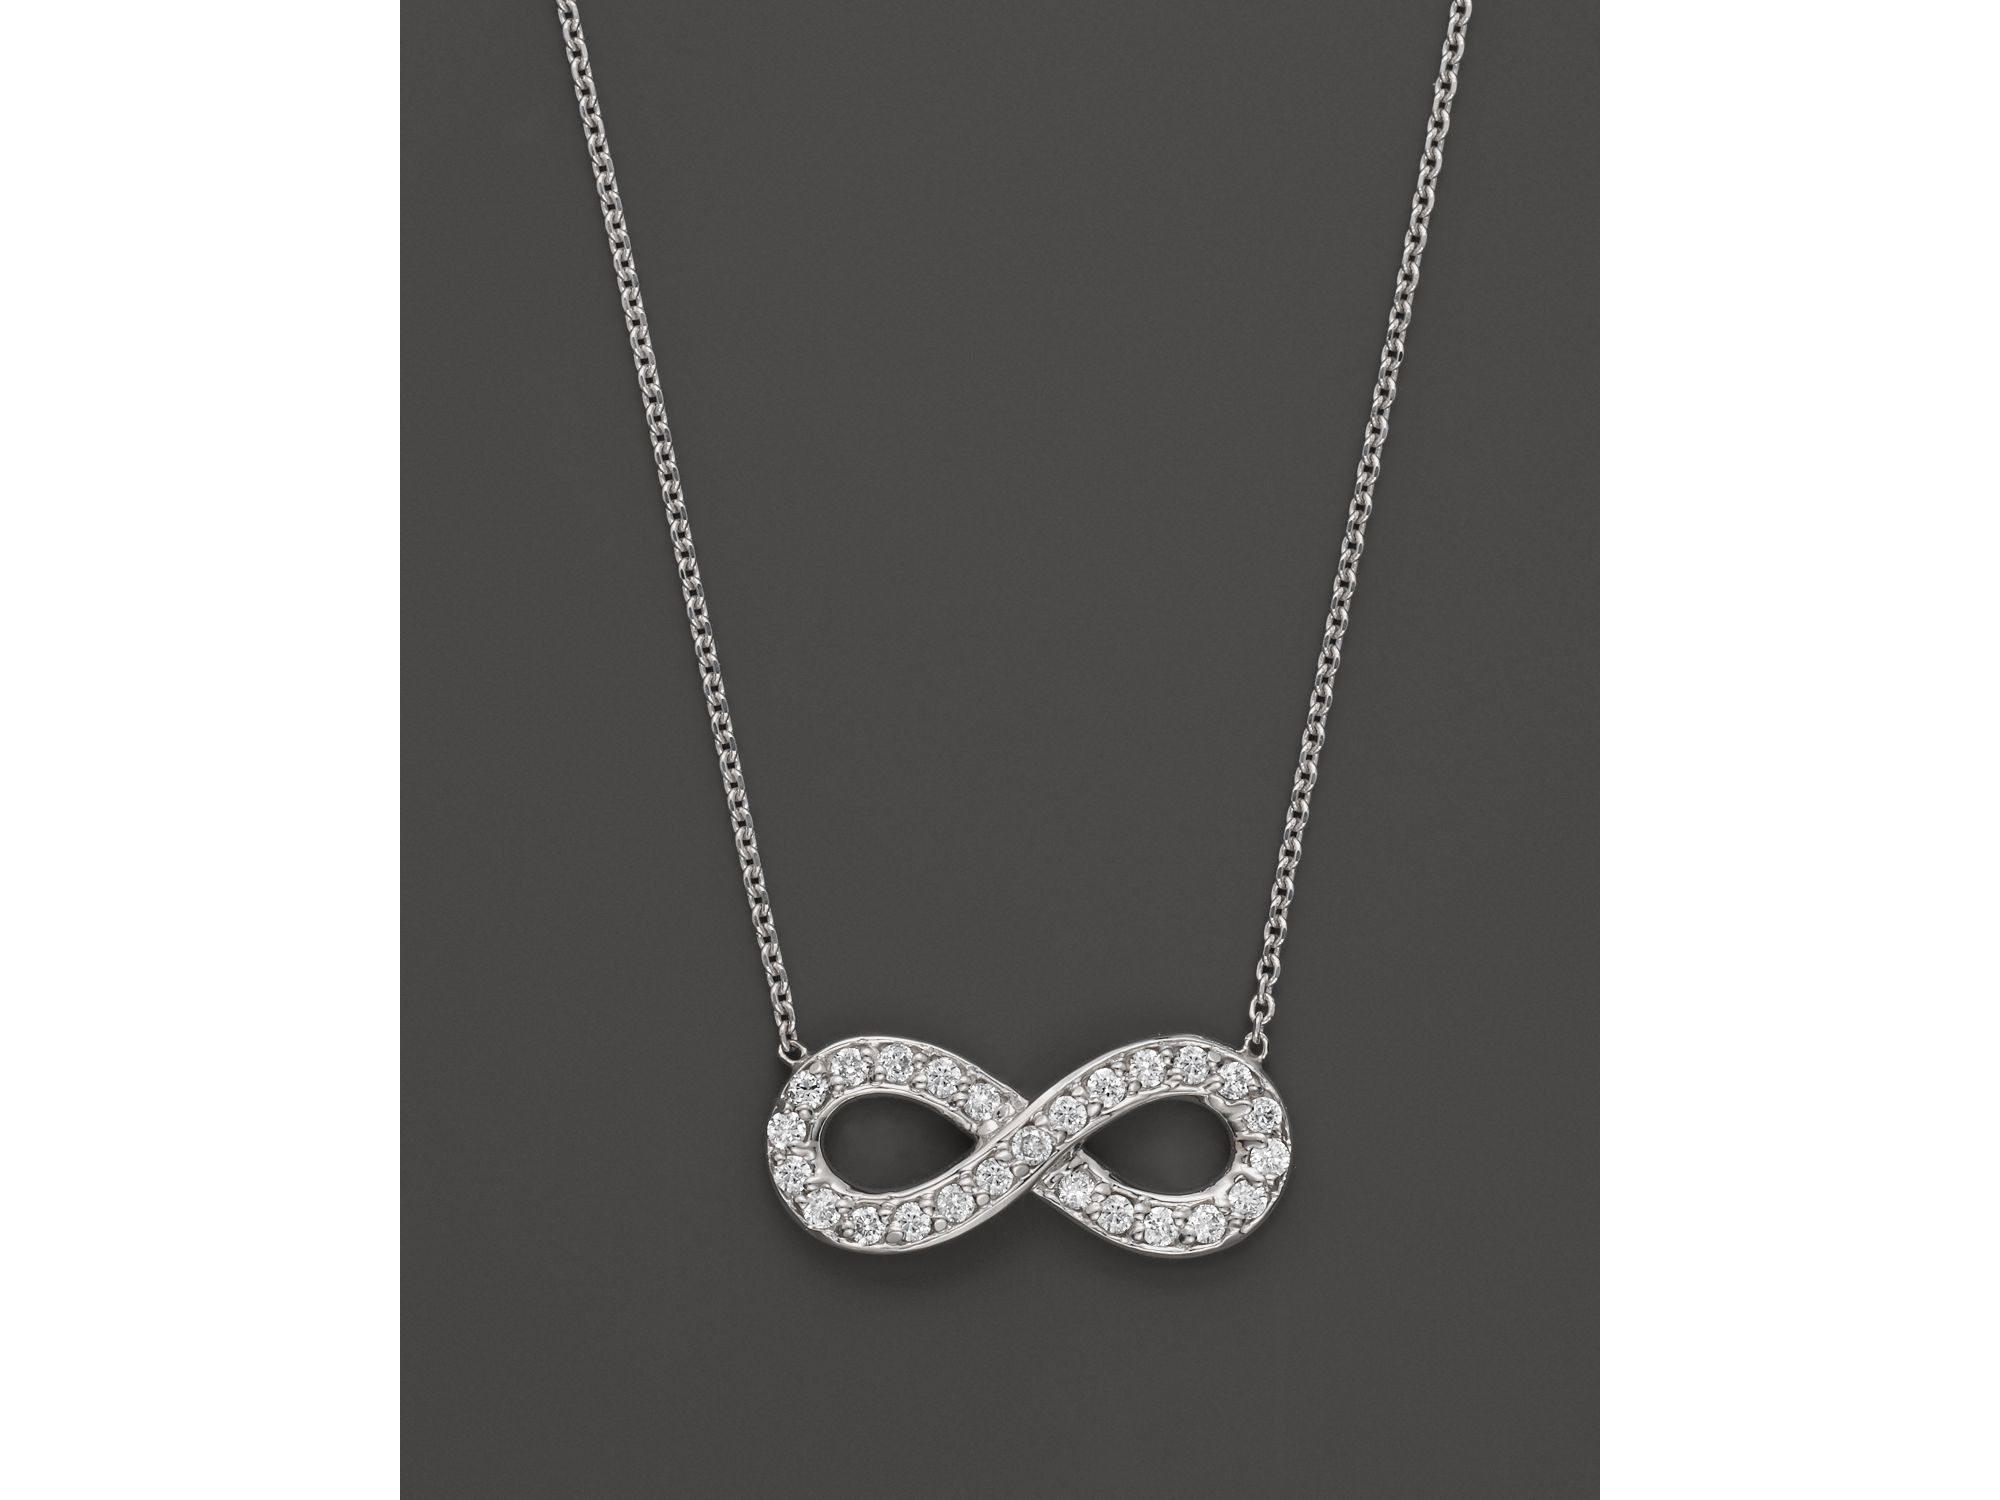 Kc designs Diamond Infinity Pendant In 14k White Gold 14 Ct